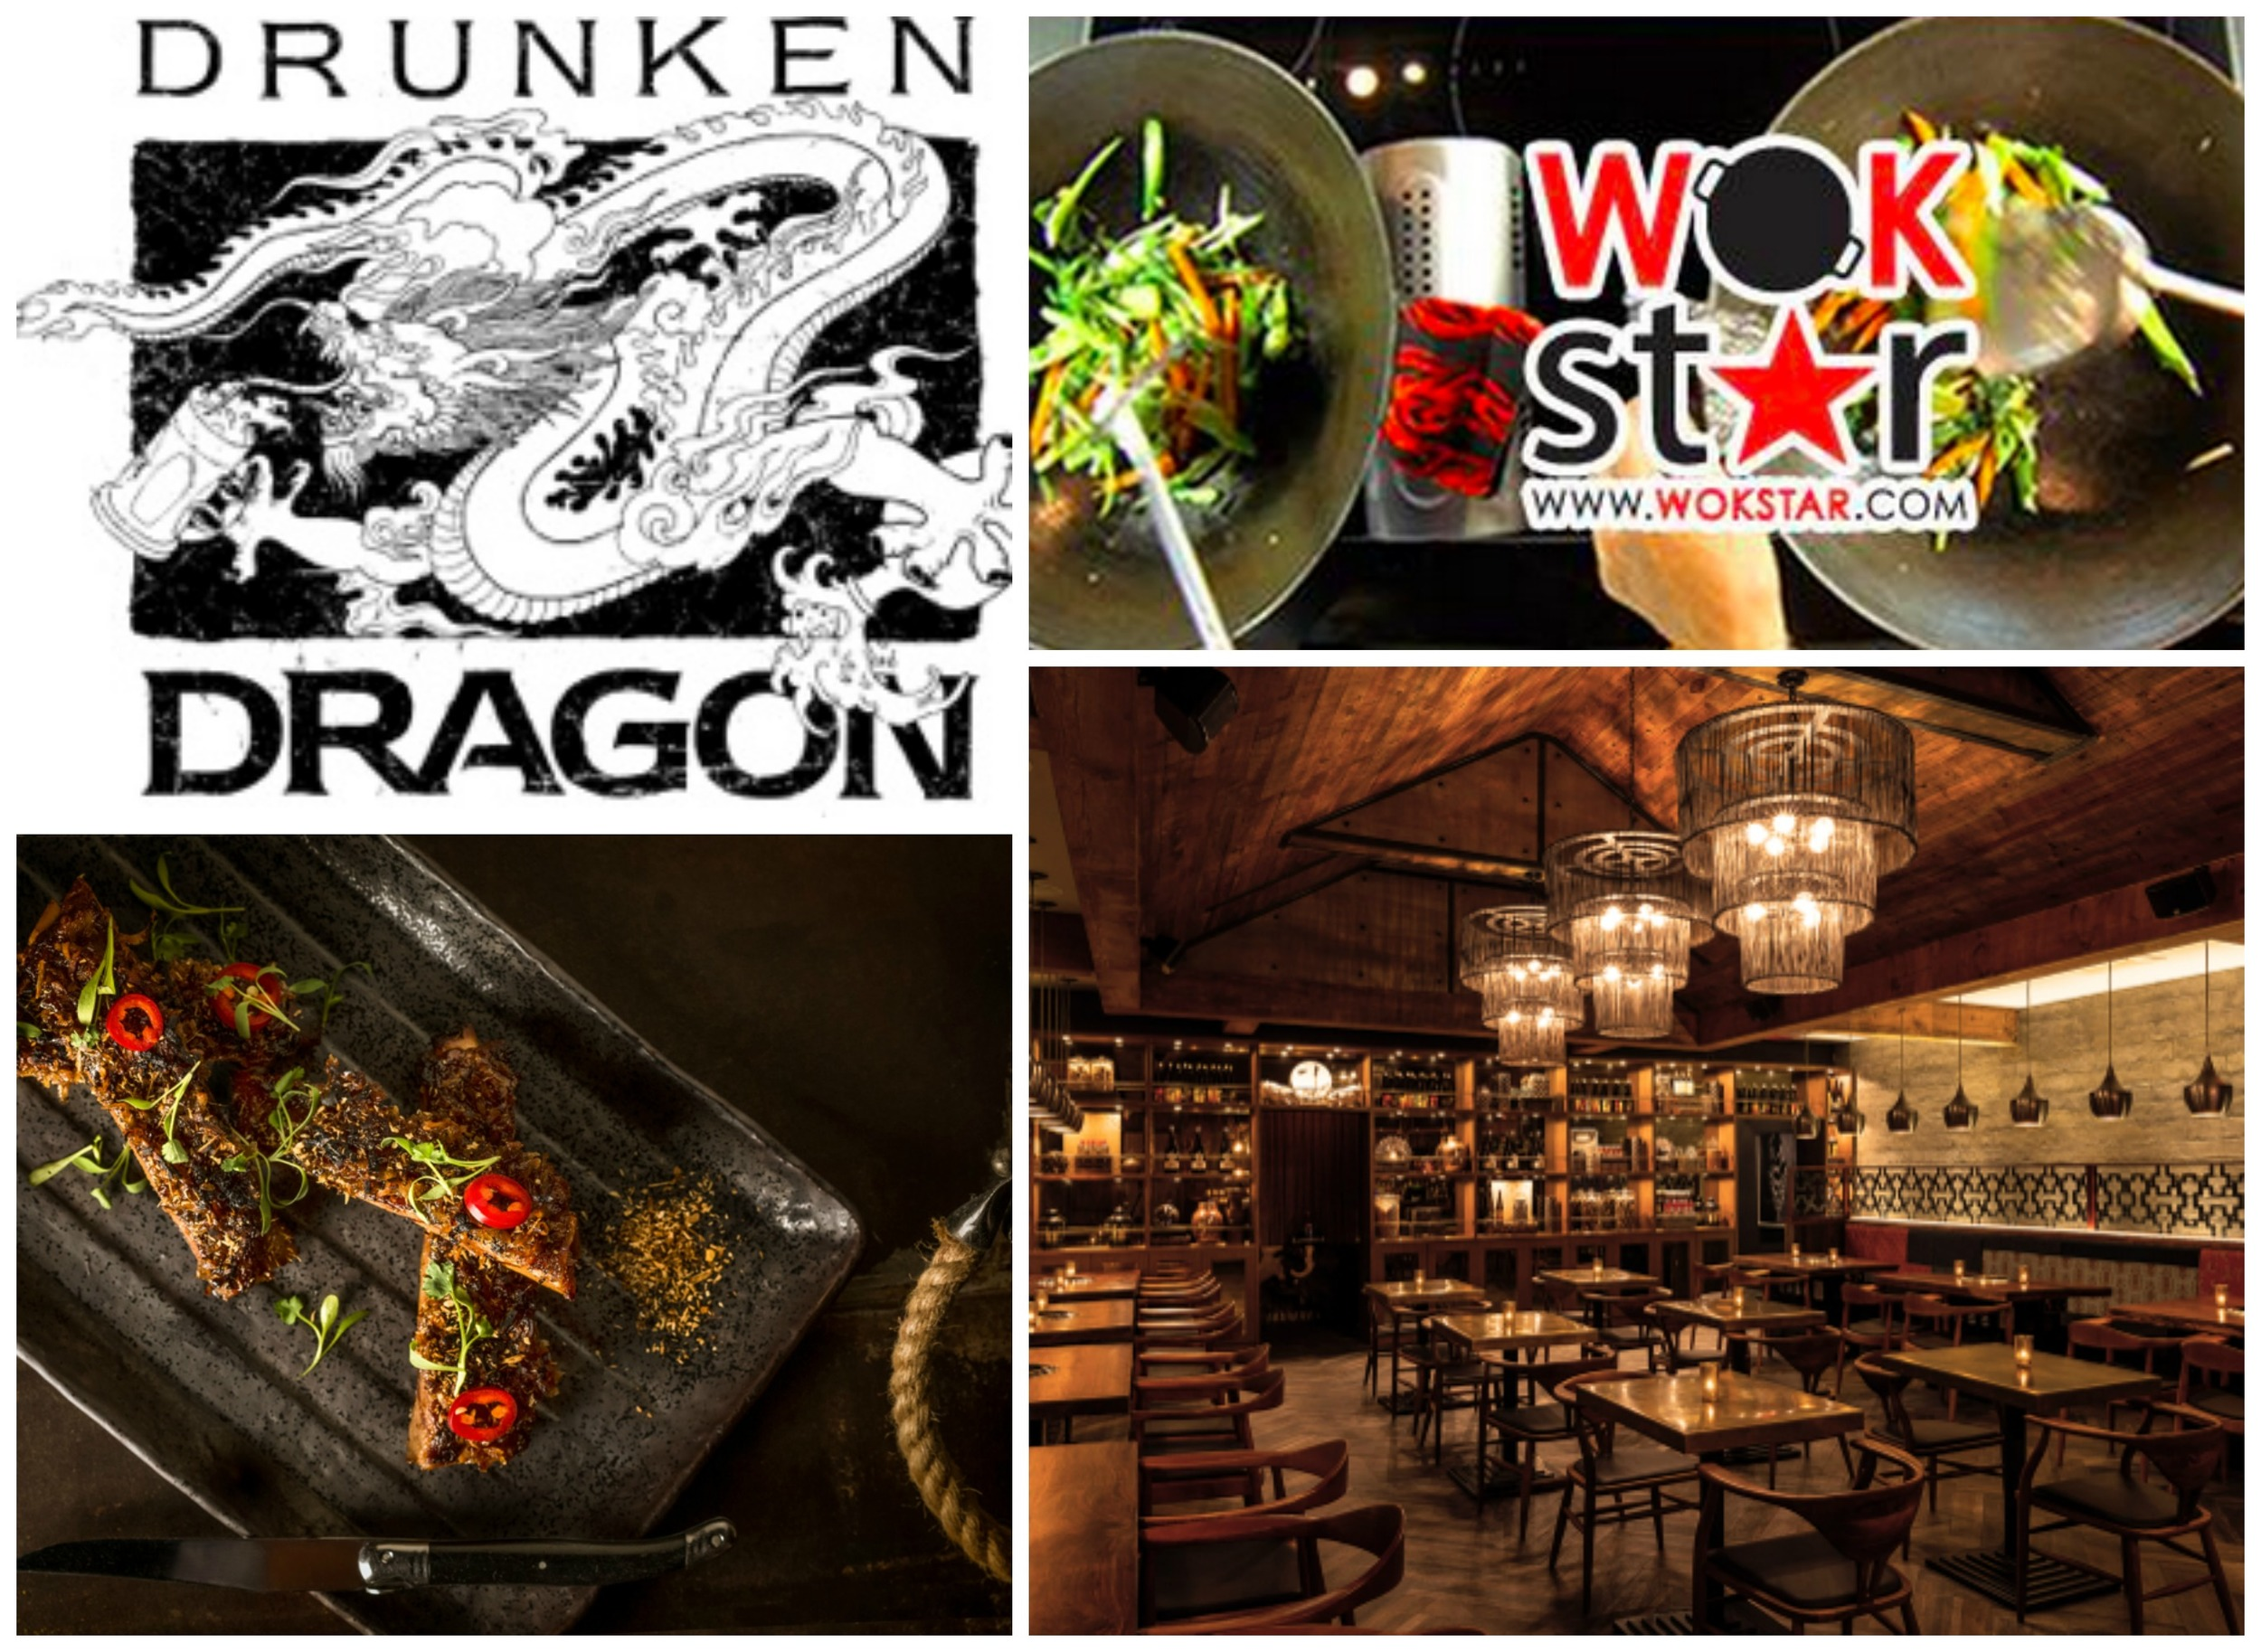 Wok Star Supper Club at Drunken Dragon